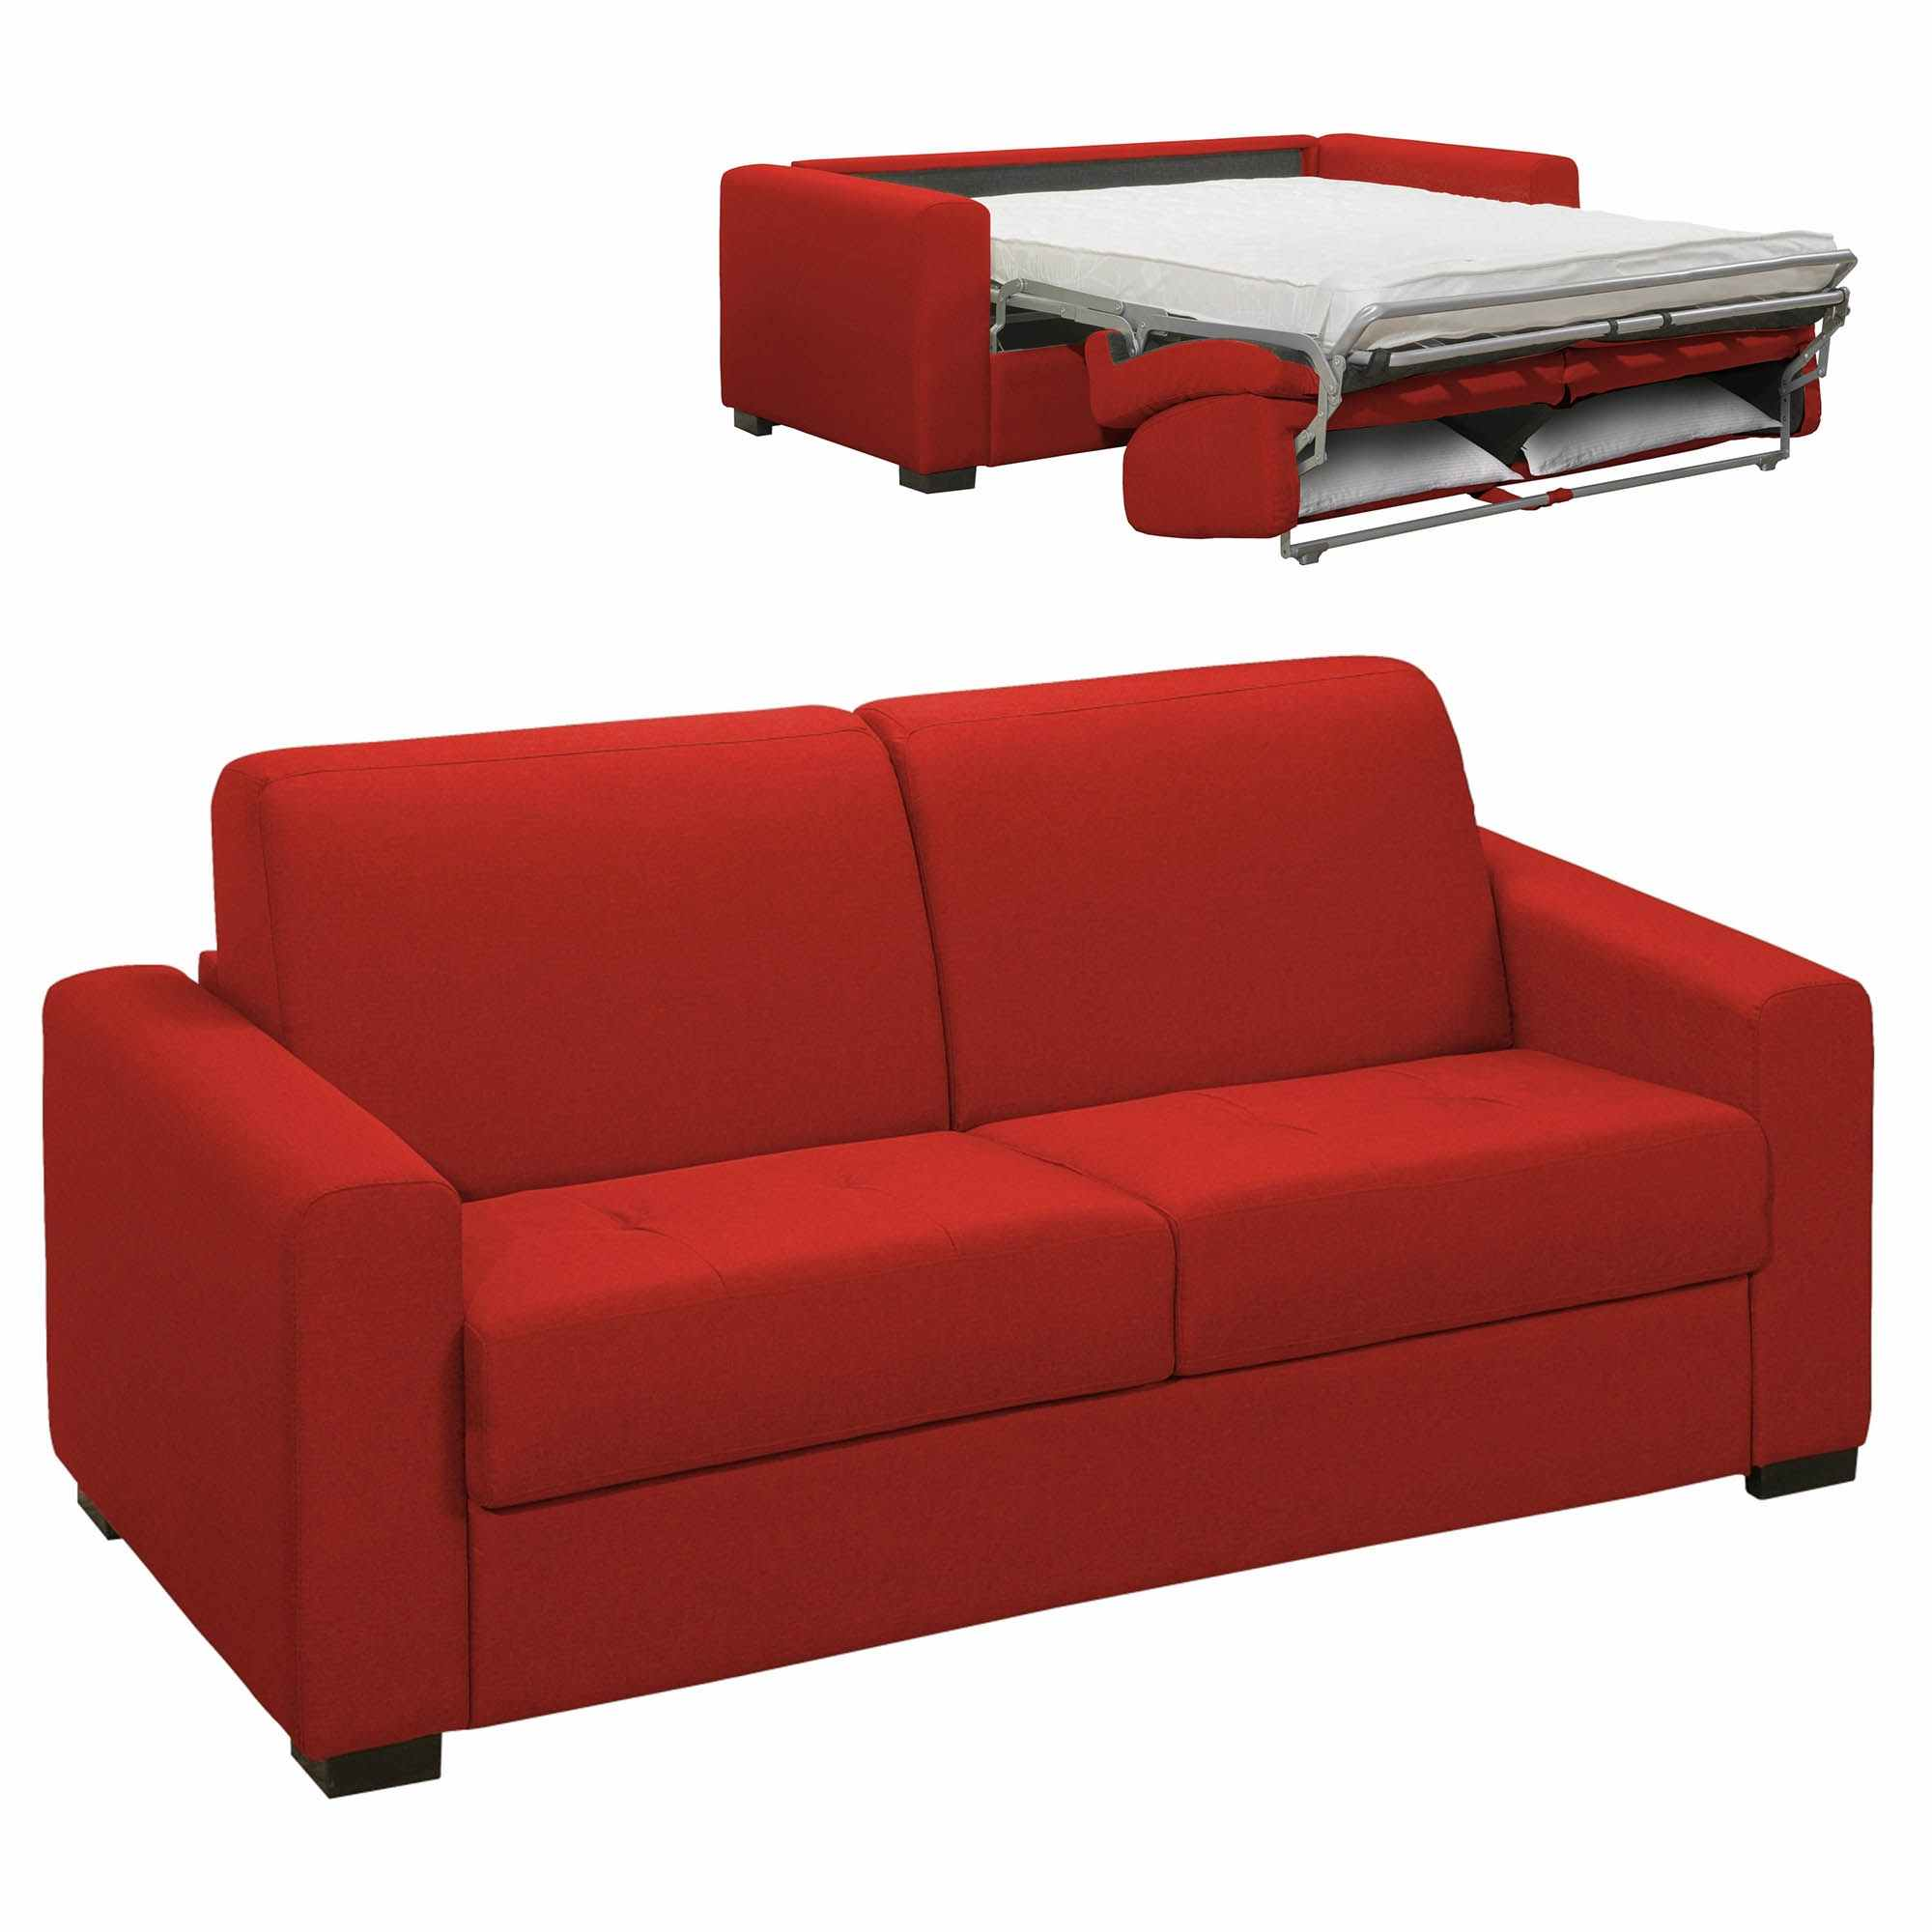 Deco In Paris 9 Canape Convertible 3 Places Louna En Tissu Rouge